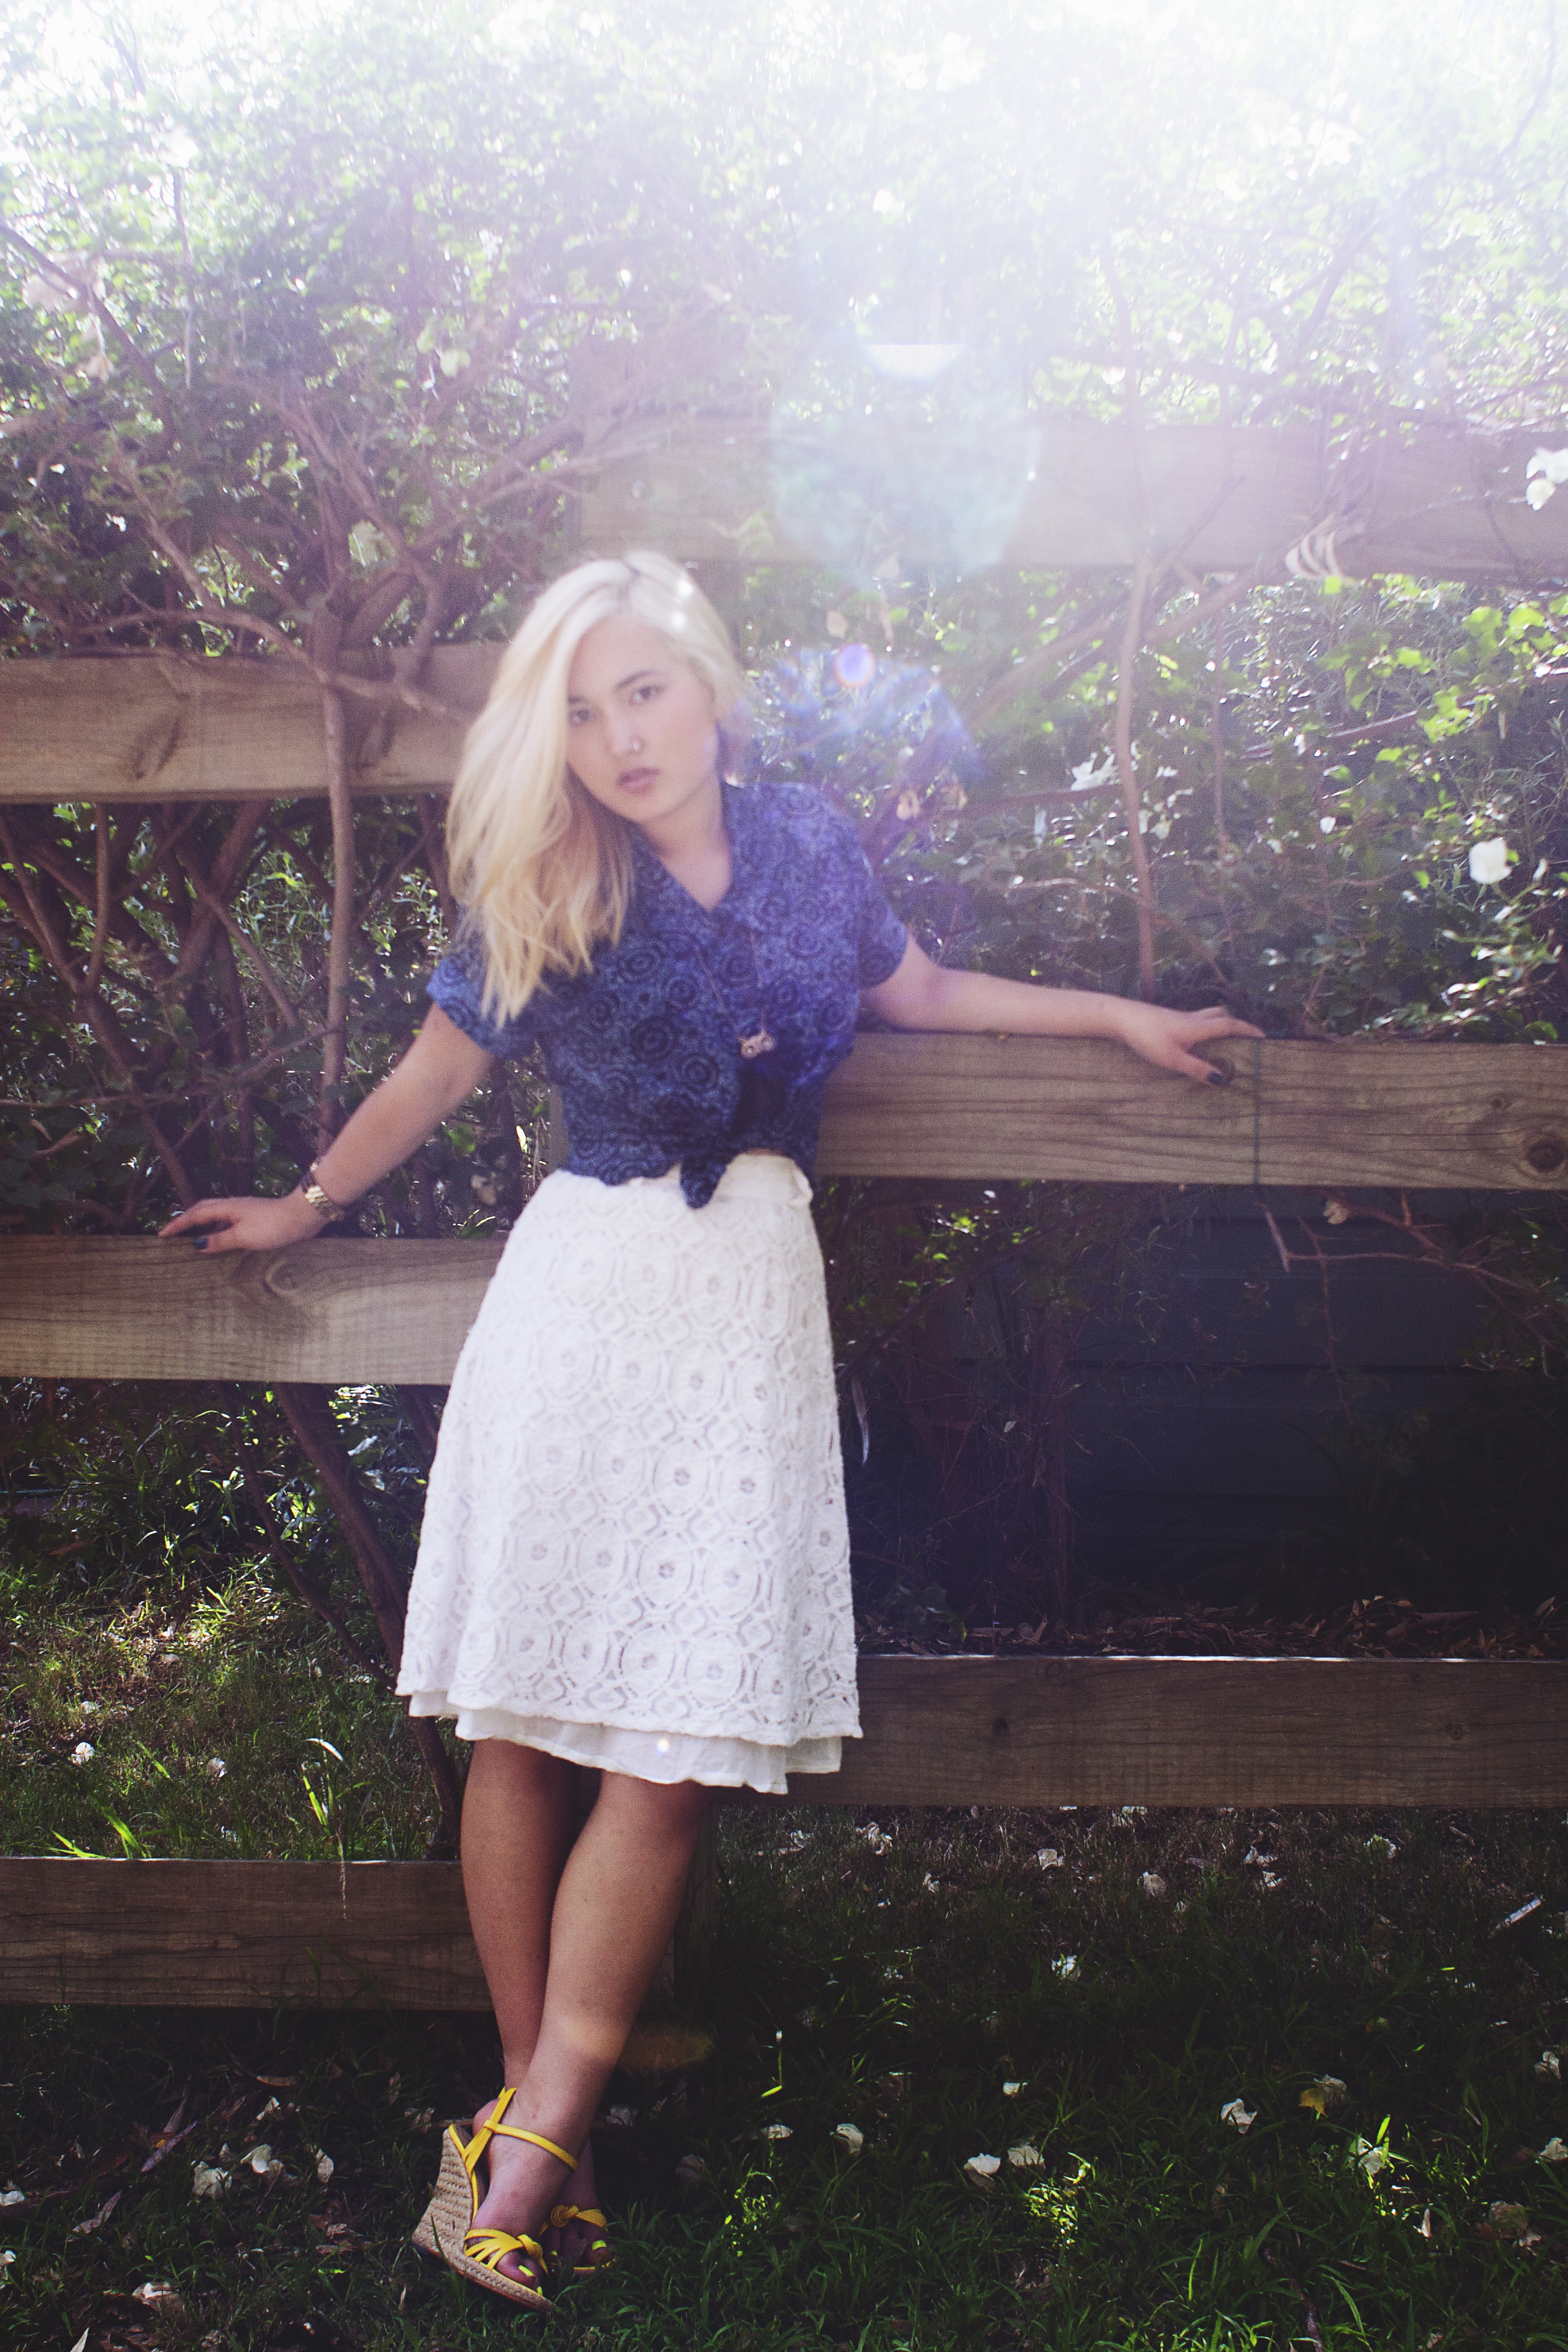 Vintage top and watch | Forever 21 necklace | Valleygirl lace skirt | Gary Castles Sydney espadrille wedges